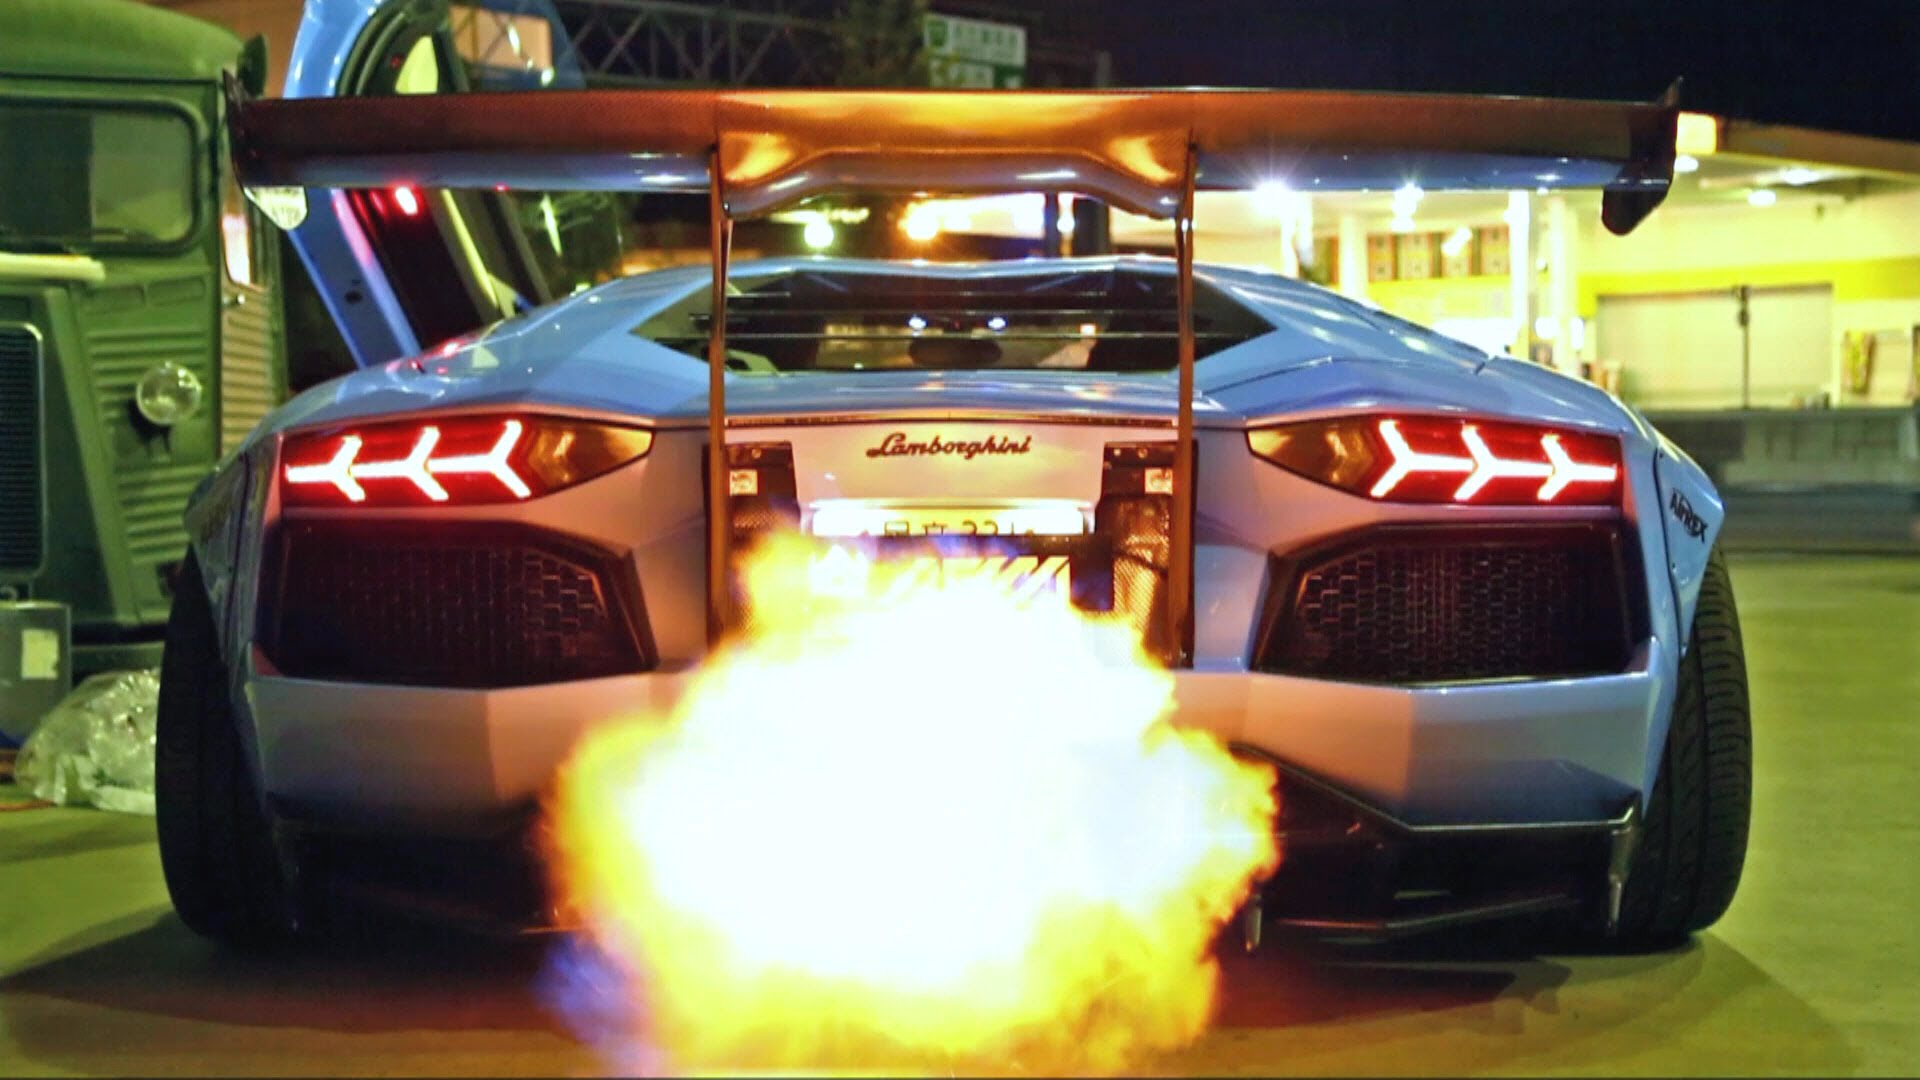 INSANE FLAMES! Lamborghini Aventador LP720-4 Ft